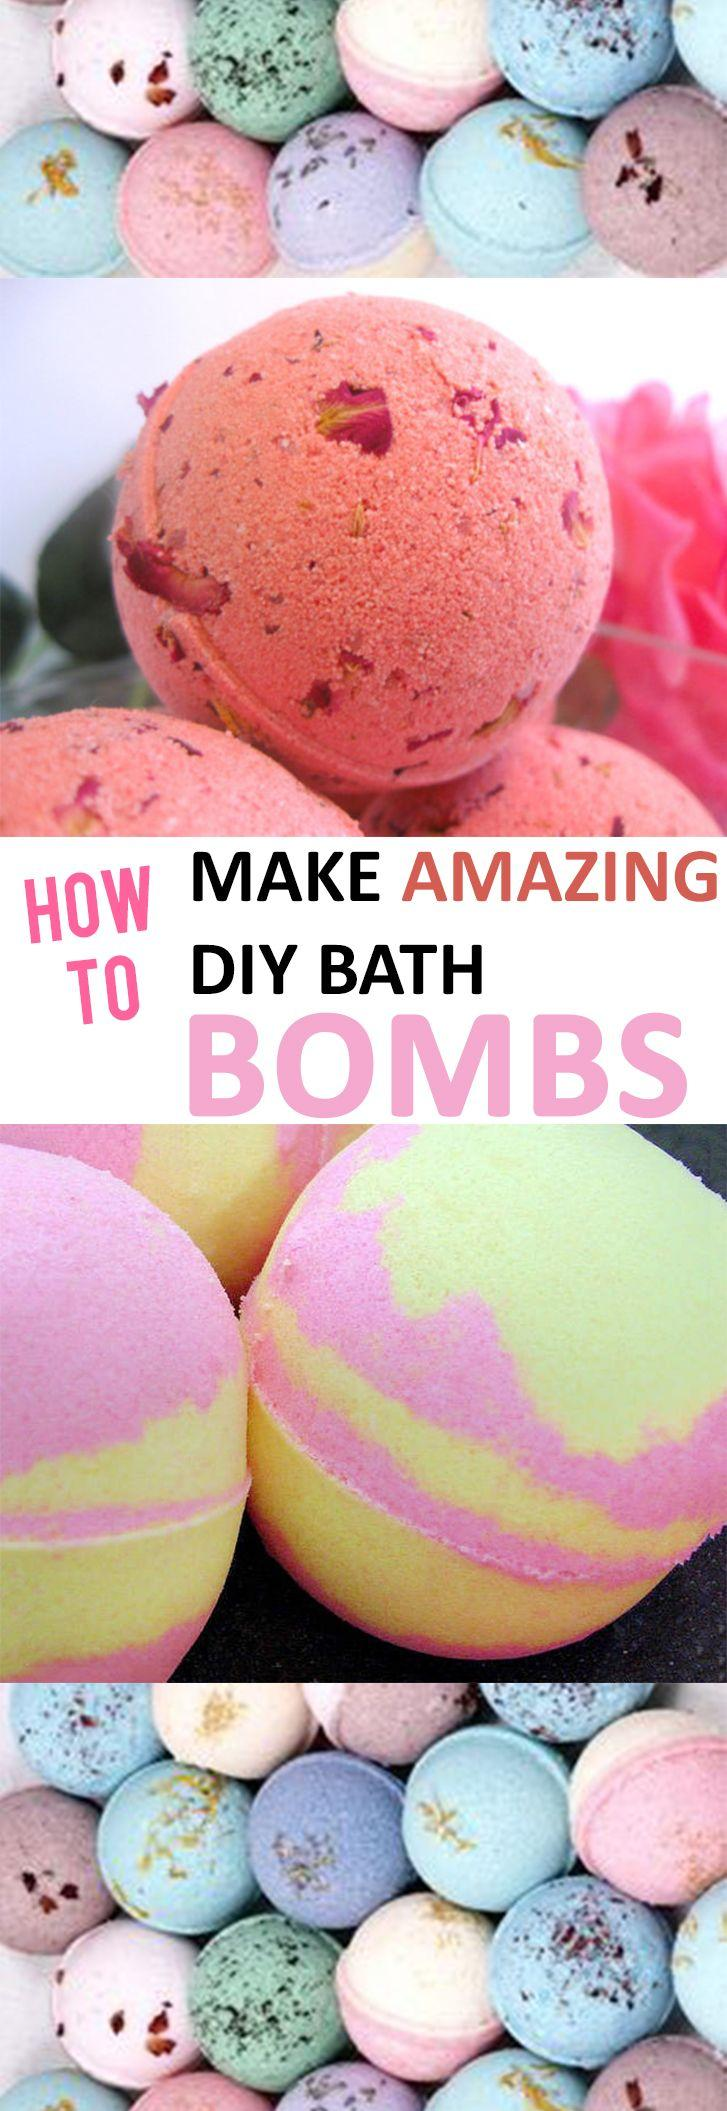 Hochzeit - How To Make Amazing DIY Bath Bombs -